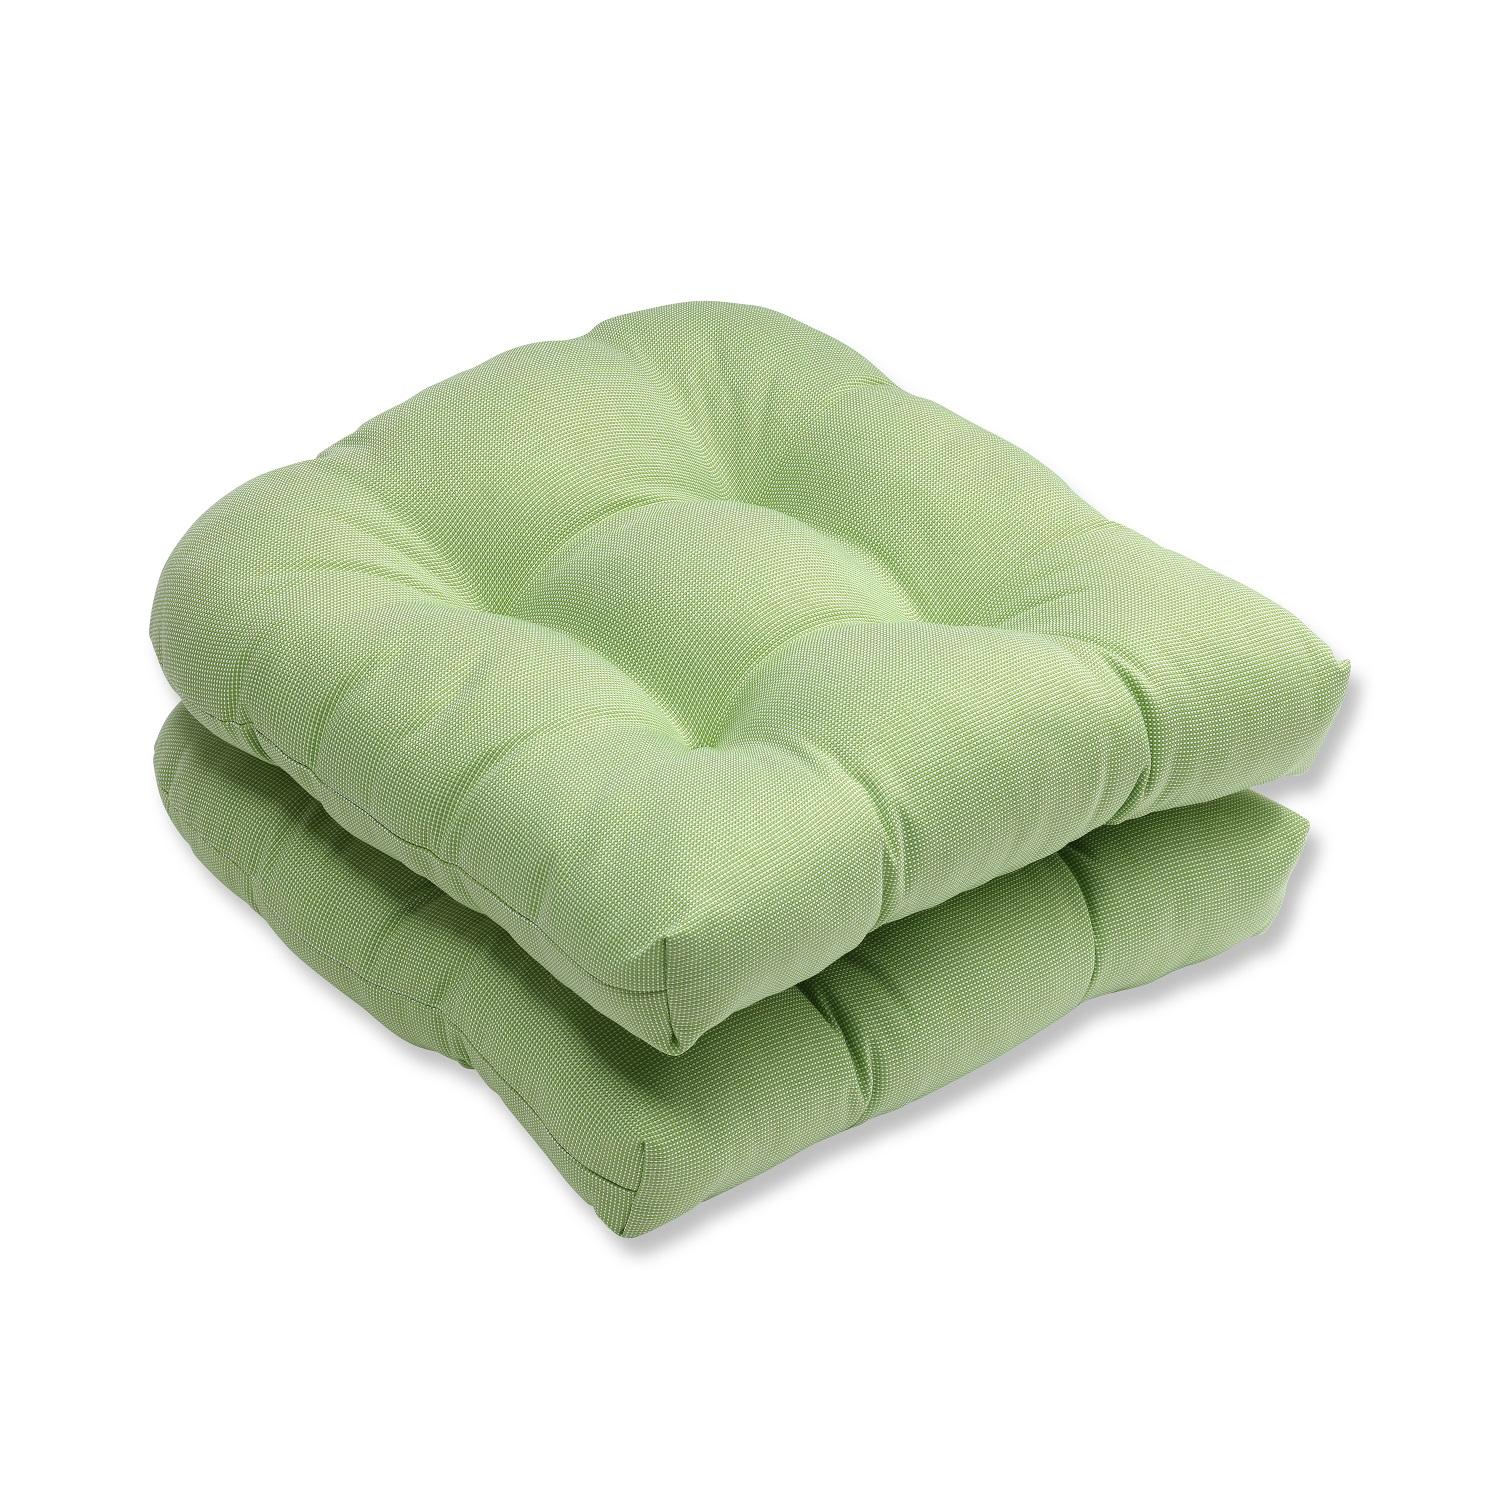 lime green chair pads jerry wheelchair set of 2 tweed outdoor patio rounded cushions